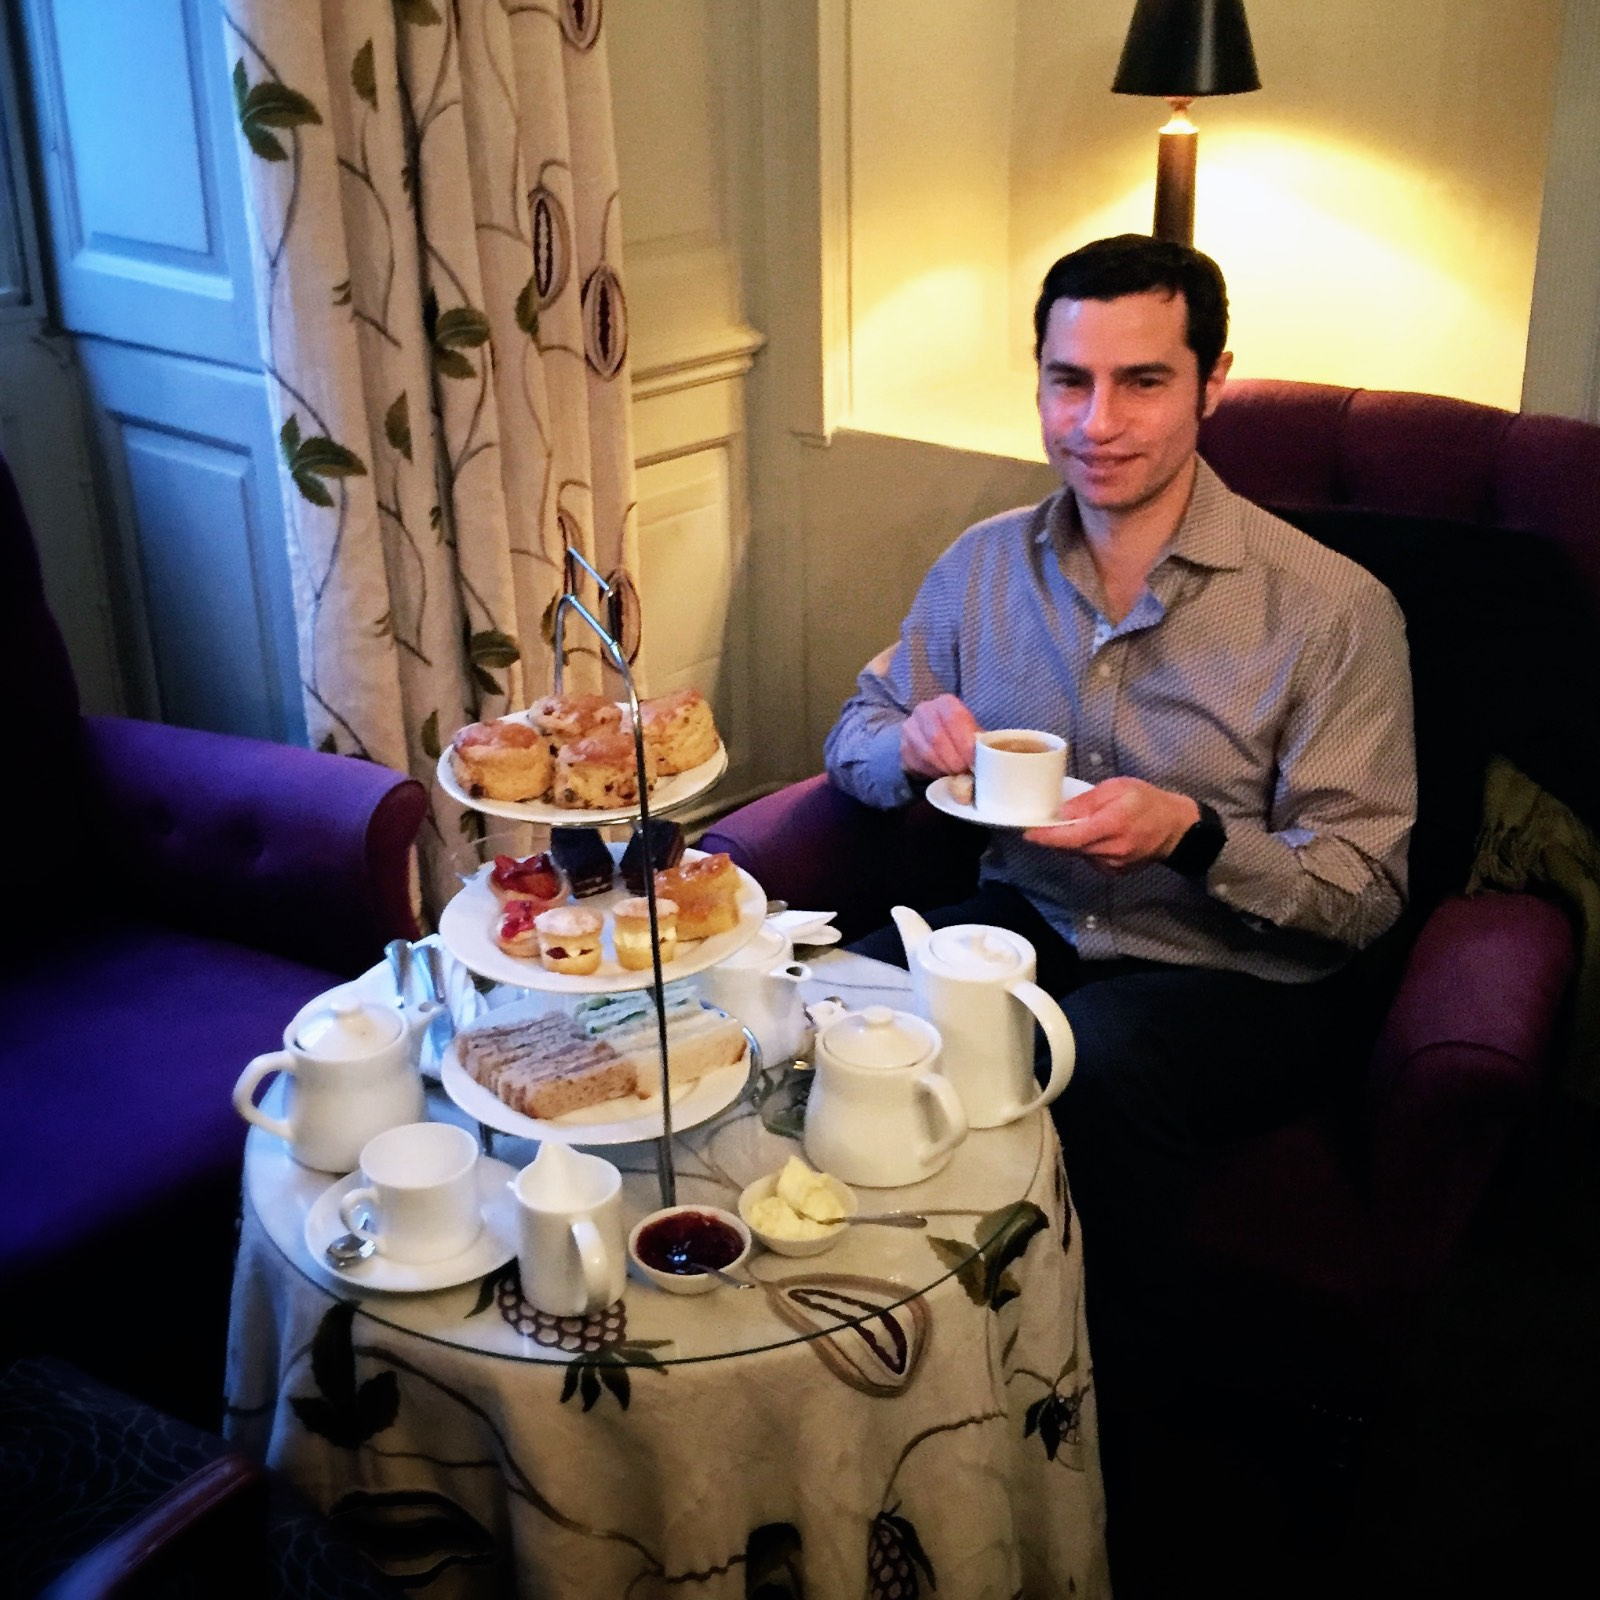 You are a tourist, you have afternoon tea! In style!